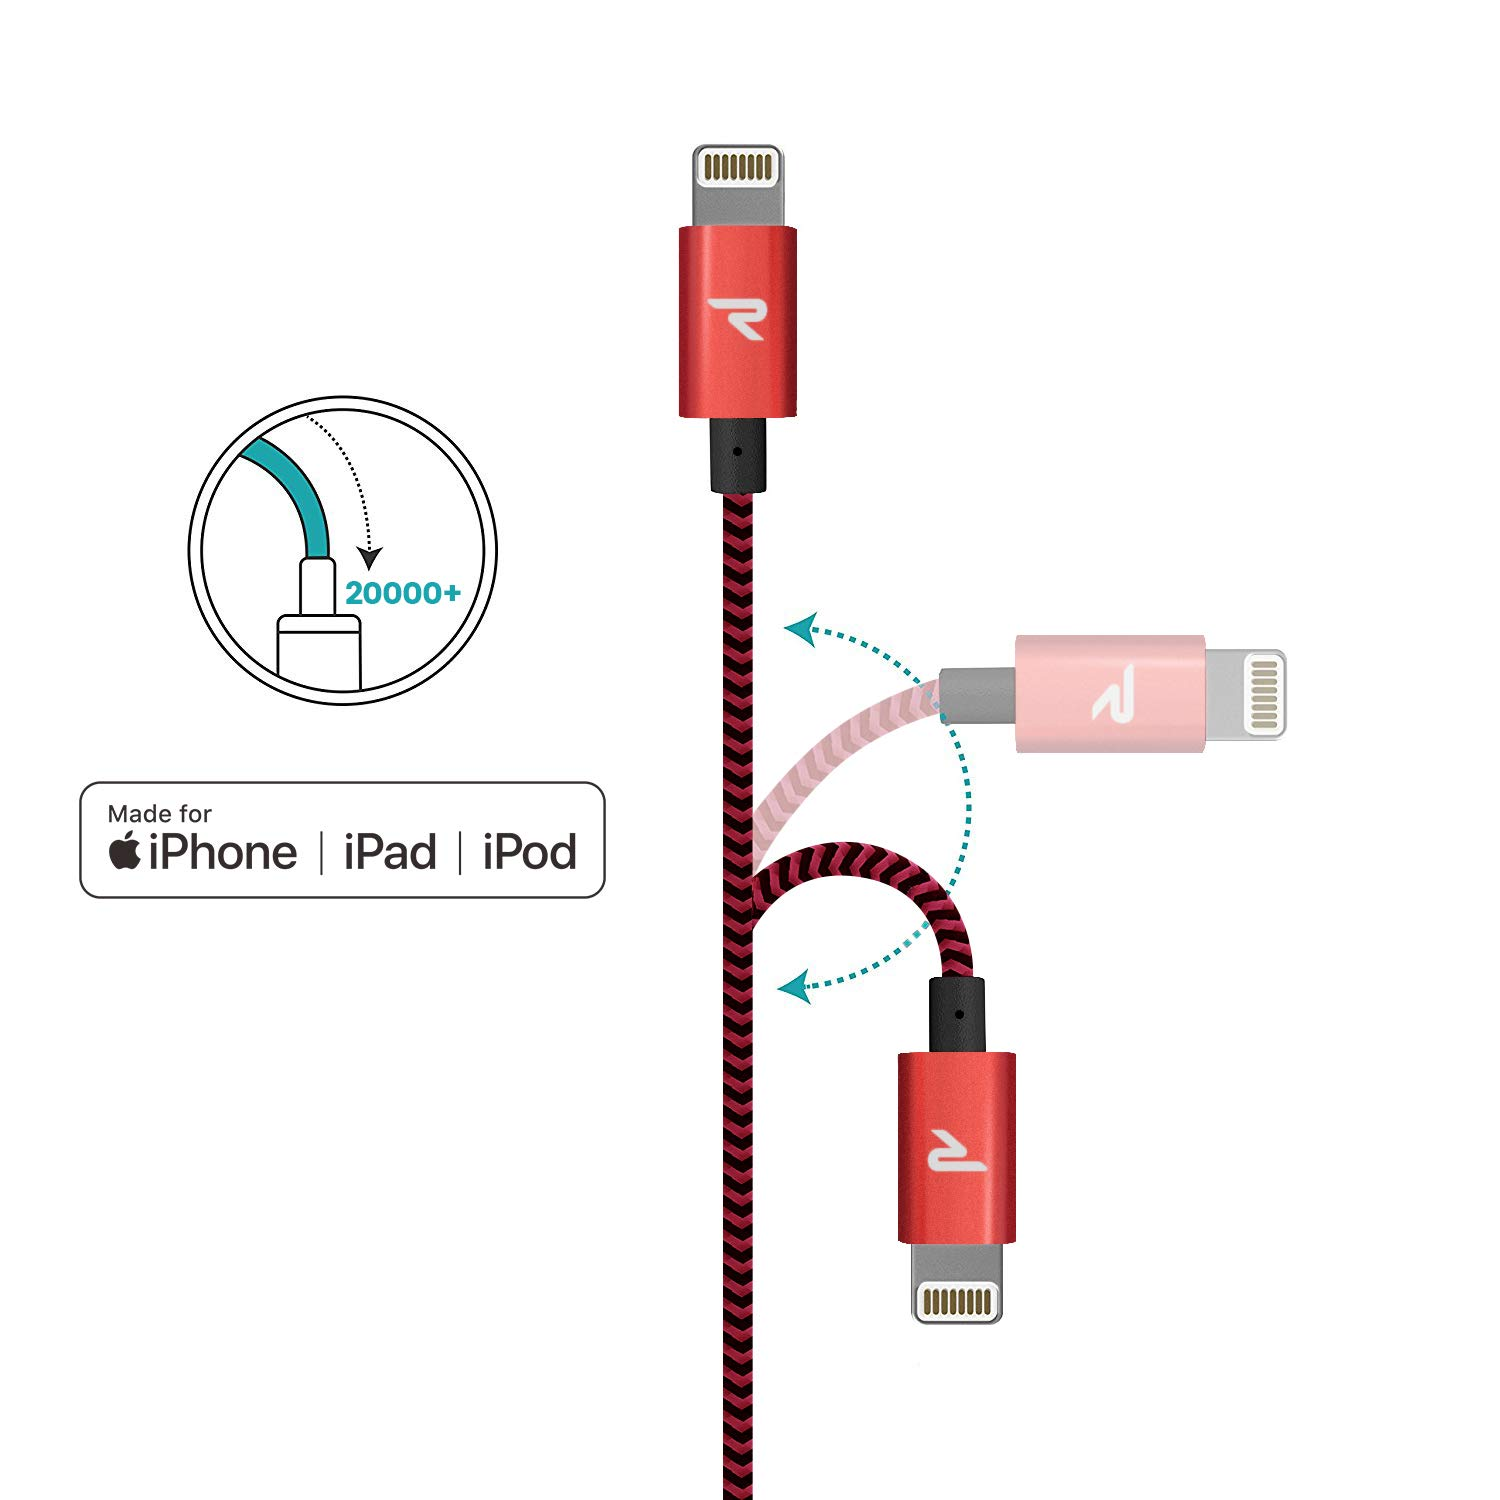 Rampow Cable iPhone Cable Lightning 2M Cargador iPhone [Apple MFi Certificado] Nylón Duradero Compatible con iPhone 11 11 Pro XS MAX XR X 8 7 6S 6 5 ...